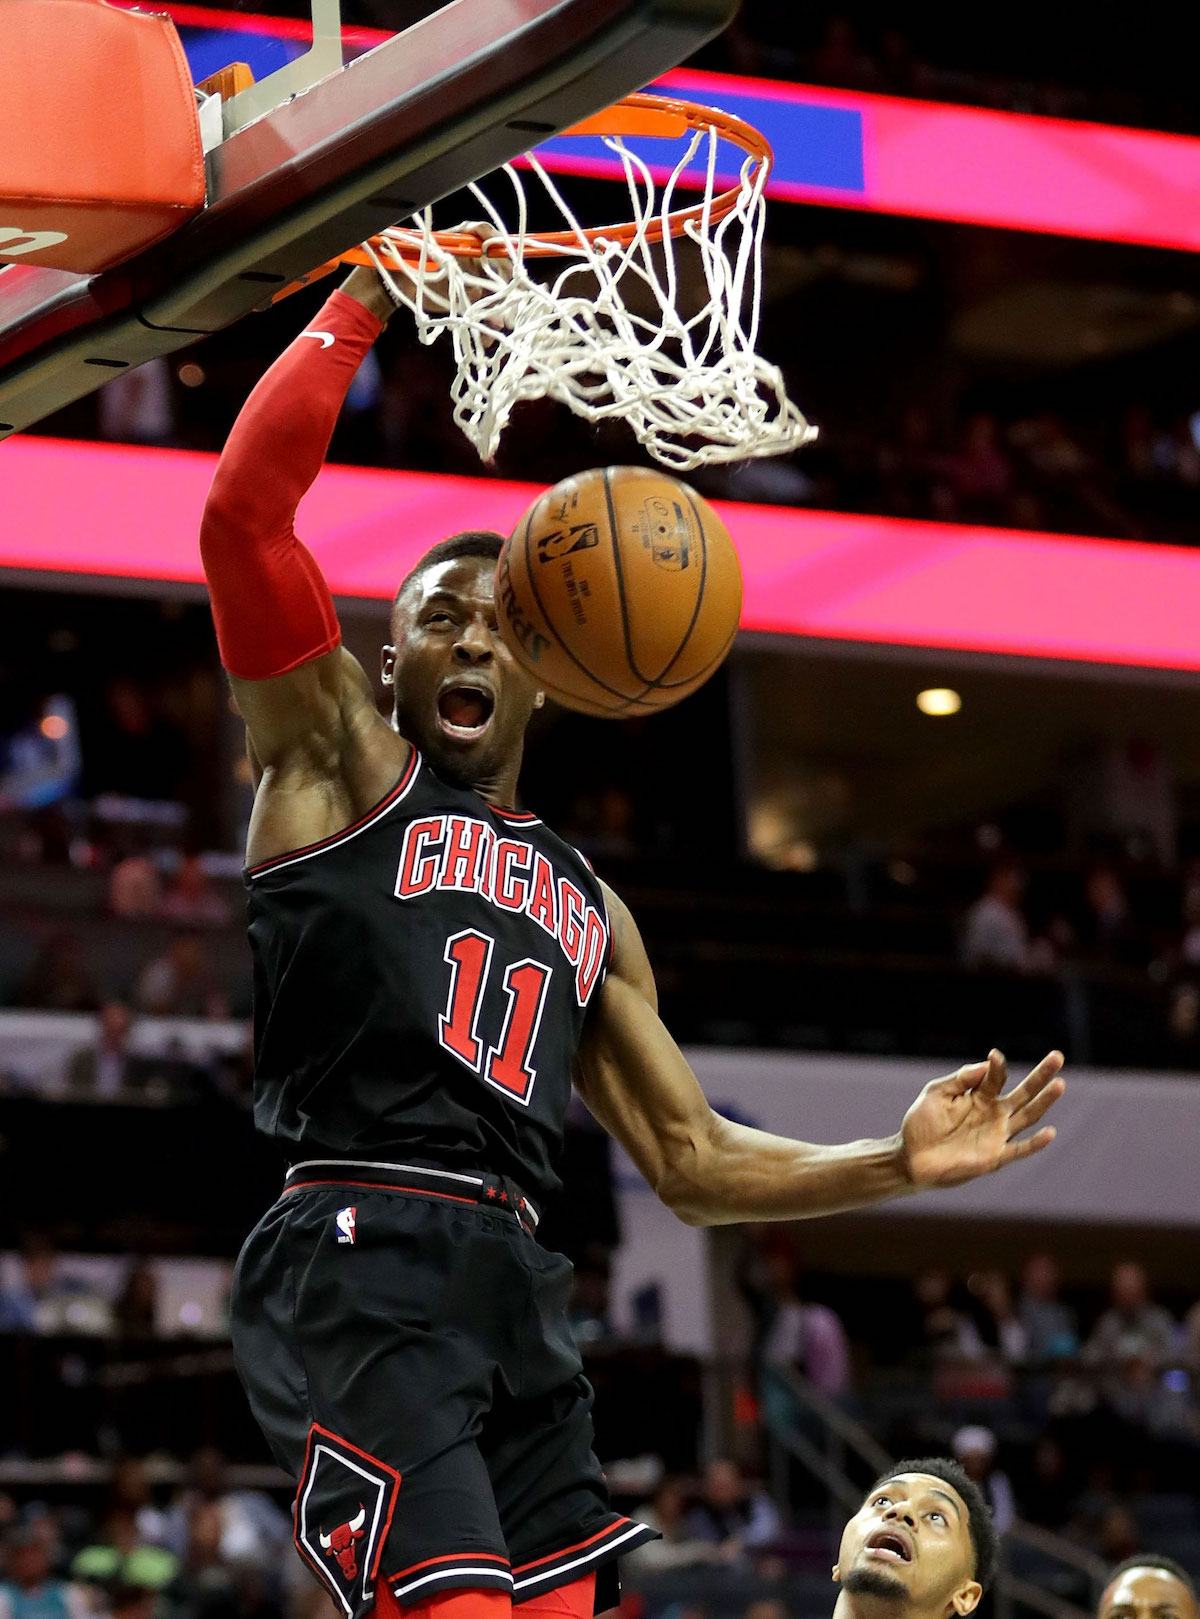 David Nwaba #11 of the Chicago Bulls dunks the ball against Jeremy Lamb #3 of the Charlotte Hornets during their game at Spectrum Center on February 27, 2018 in Charlotte, North Carolina.